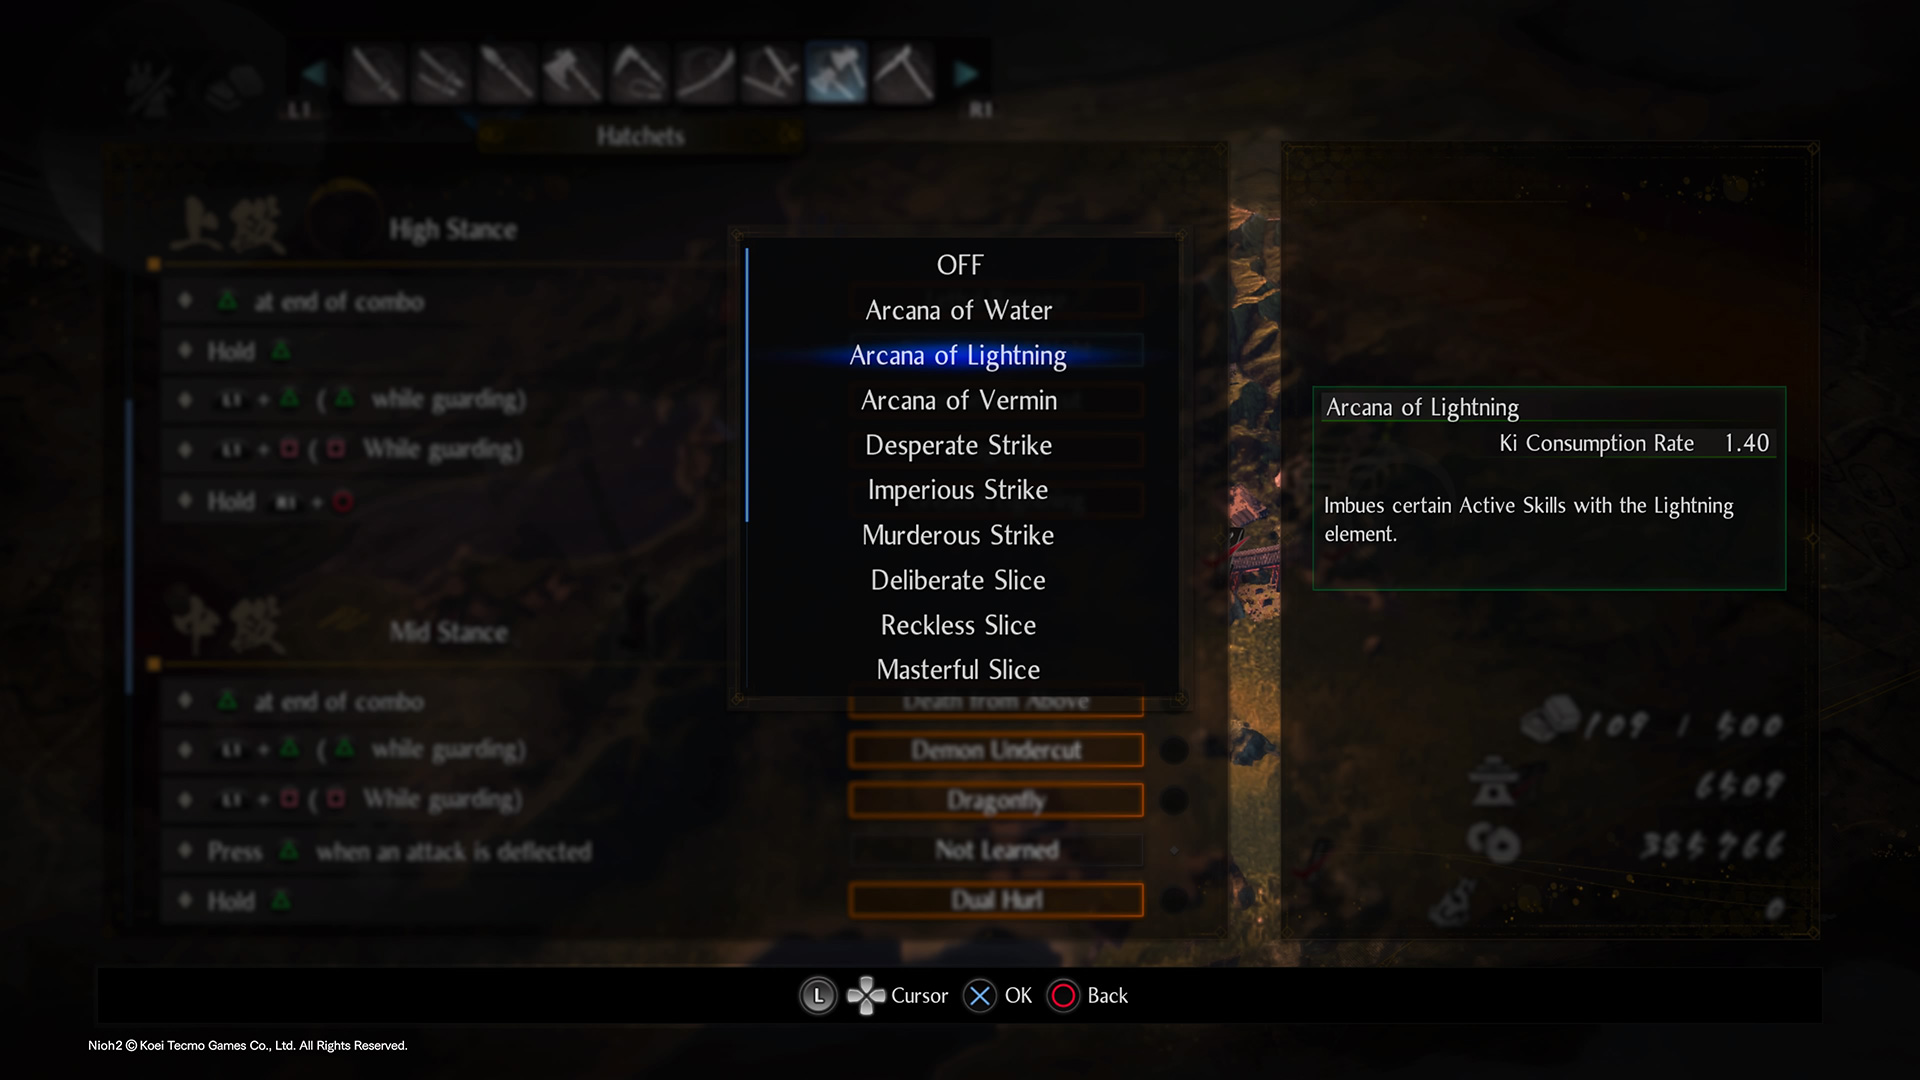 How to equip Arcana of Lightning in Nioh 2